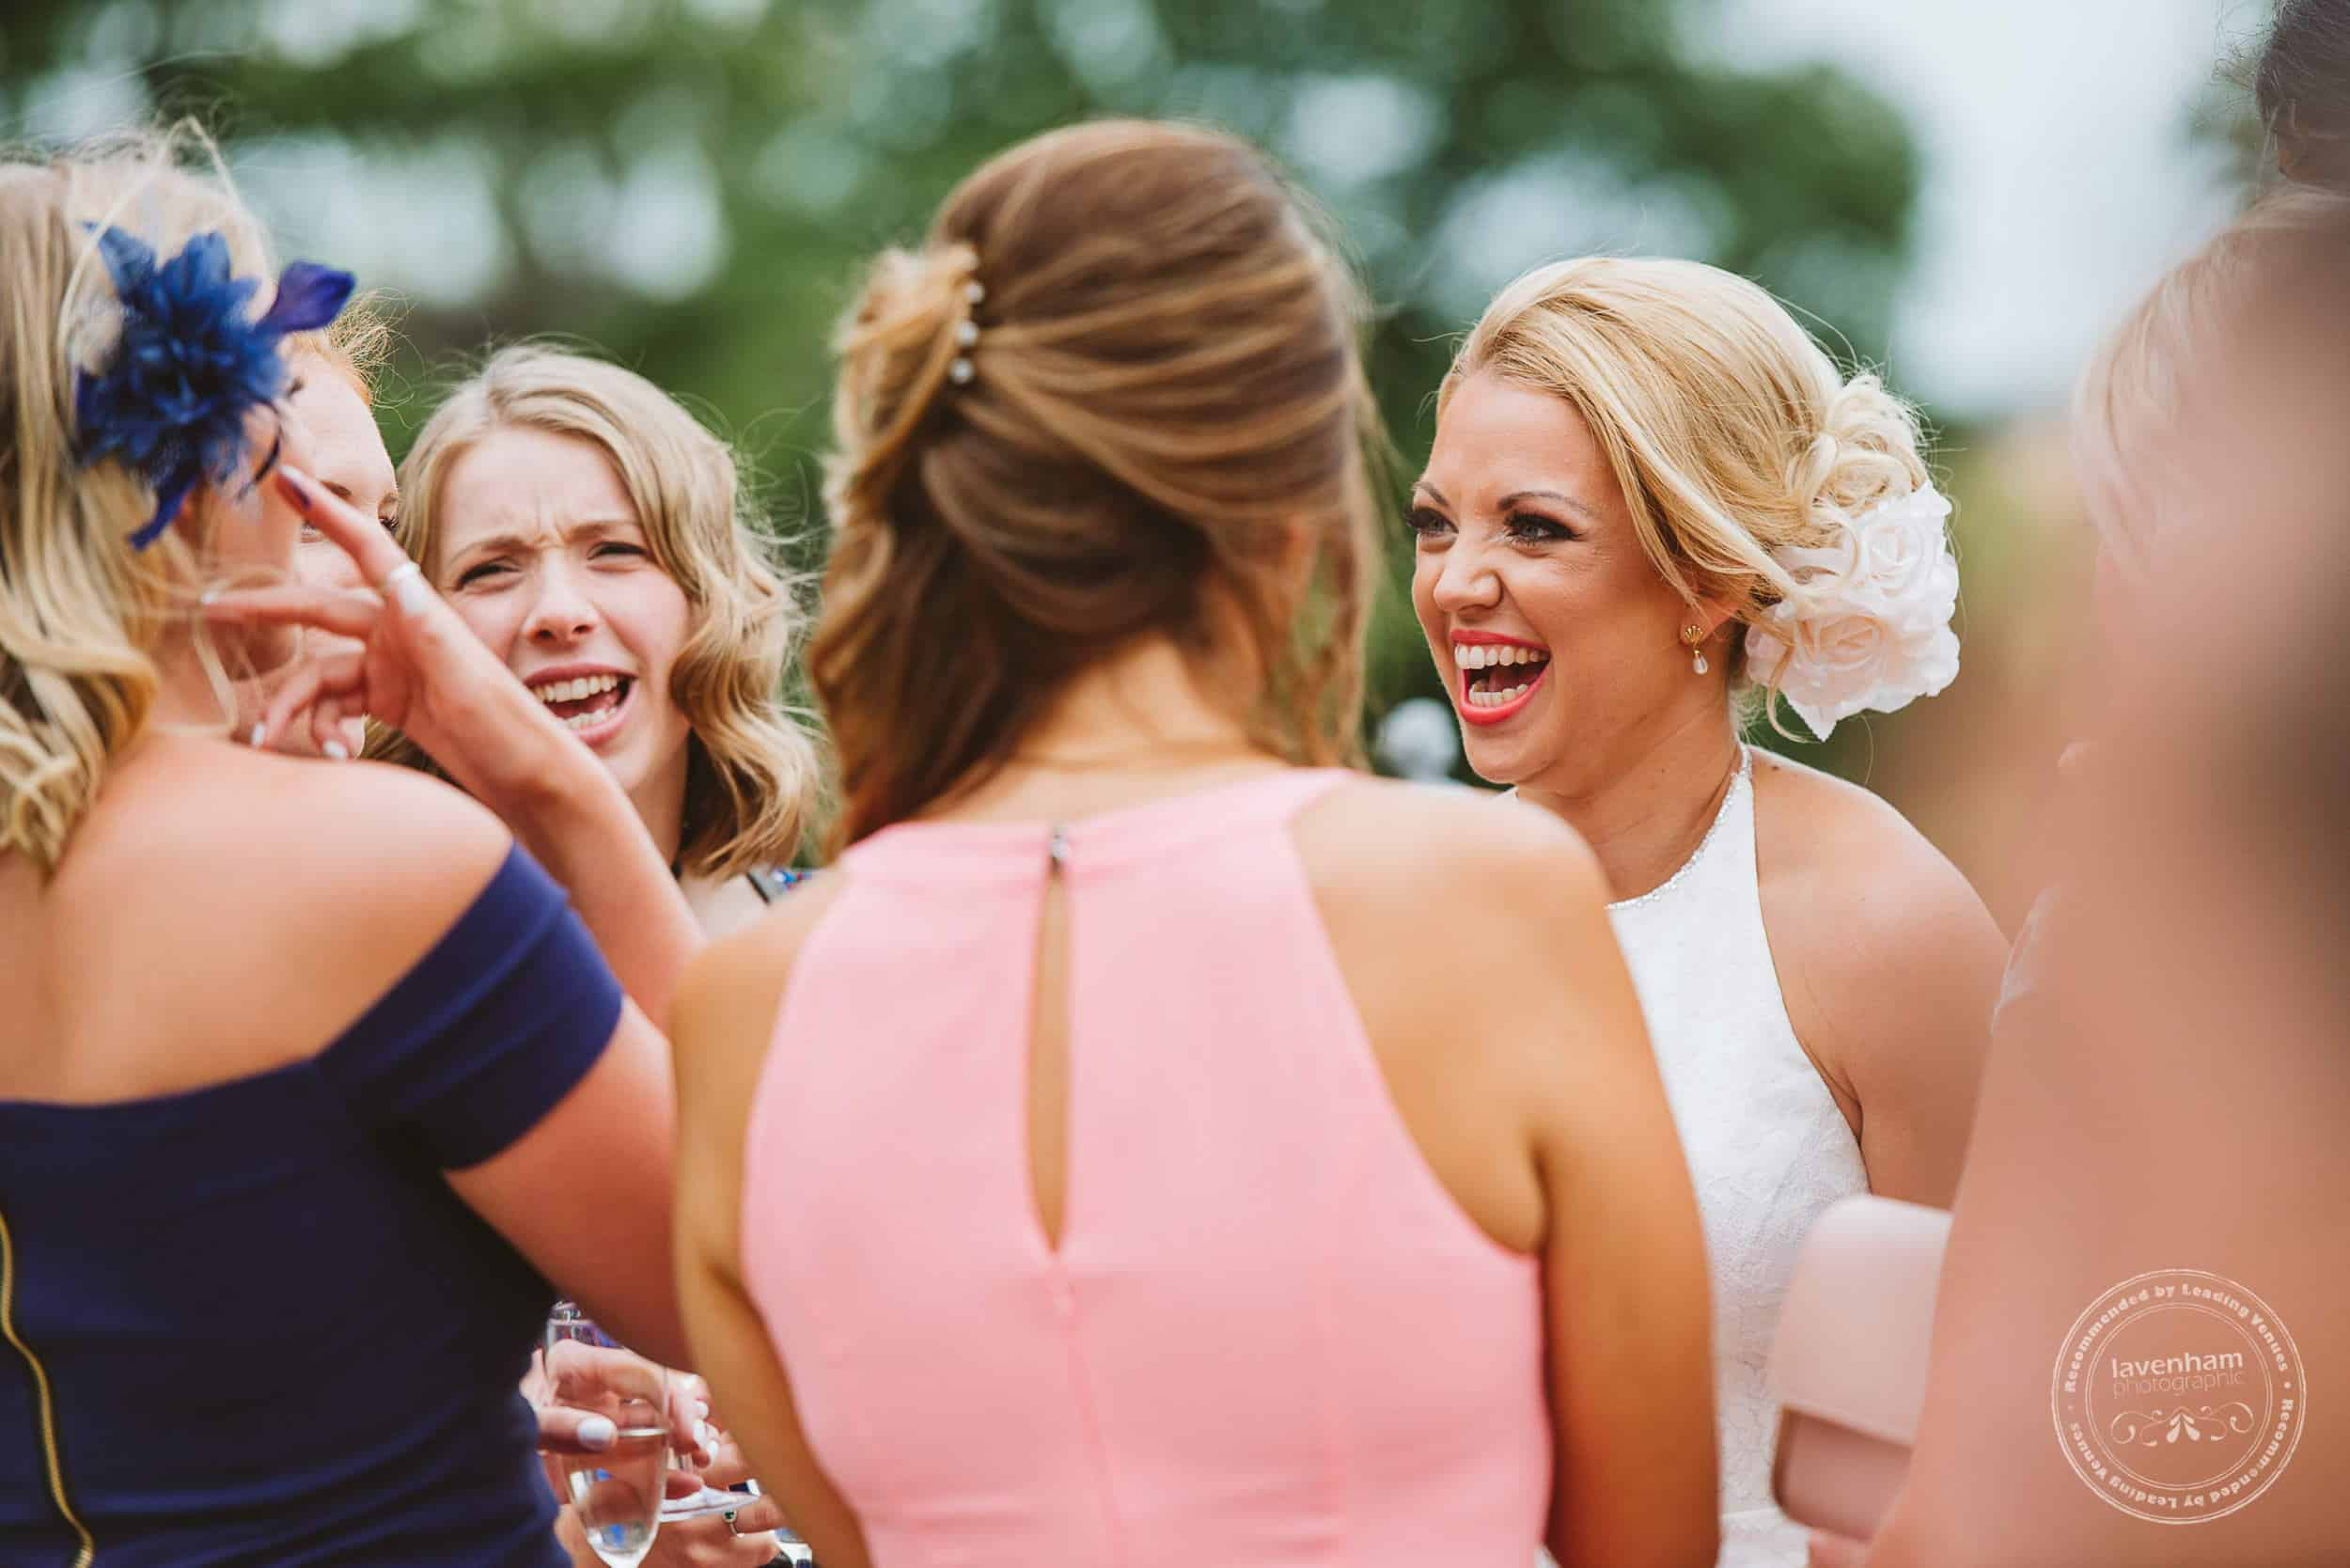 140717 Layer Marney Wedding Photography by Lavenham Photographic 079